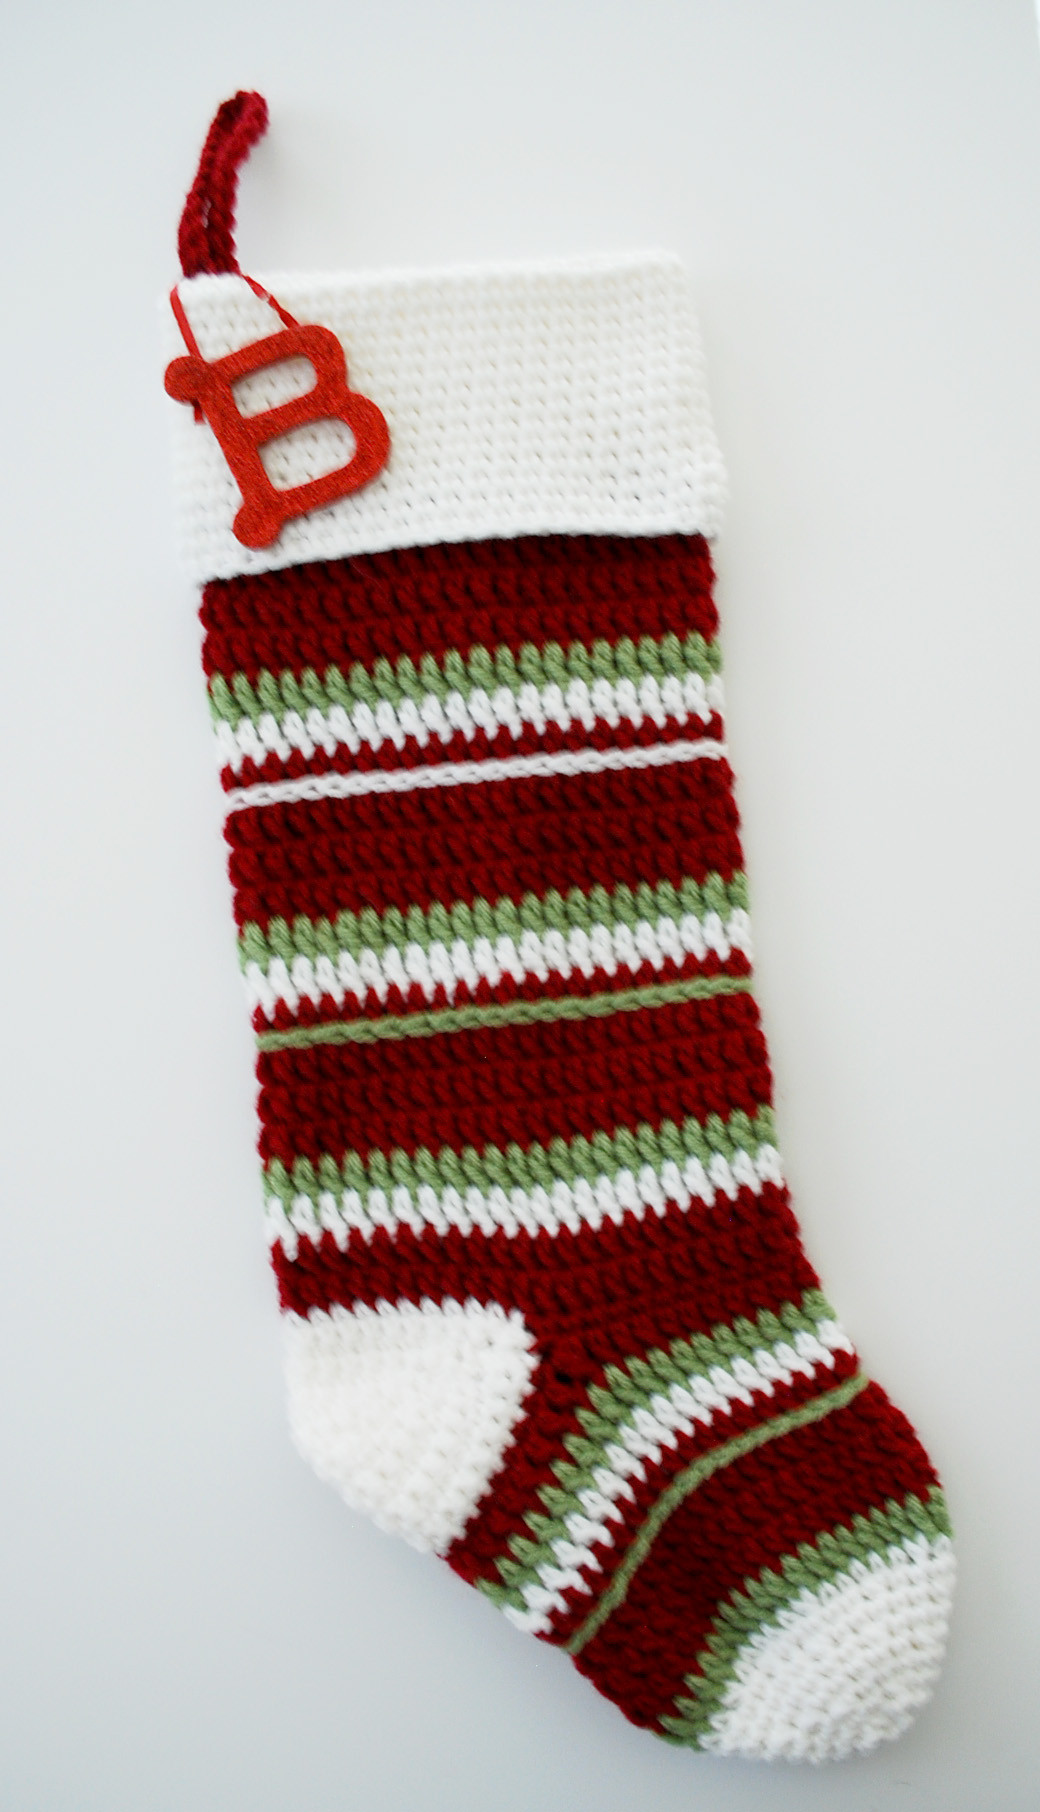 Free Crochet Christmas Stocking Patterns Lovely Crochet Christmas Stockings B Hooked Crochet Of Top 44 Photos Free Crochet Christmas Stocking Patterns